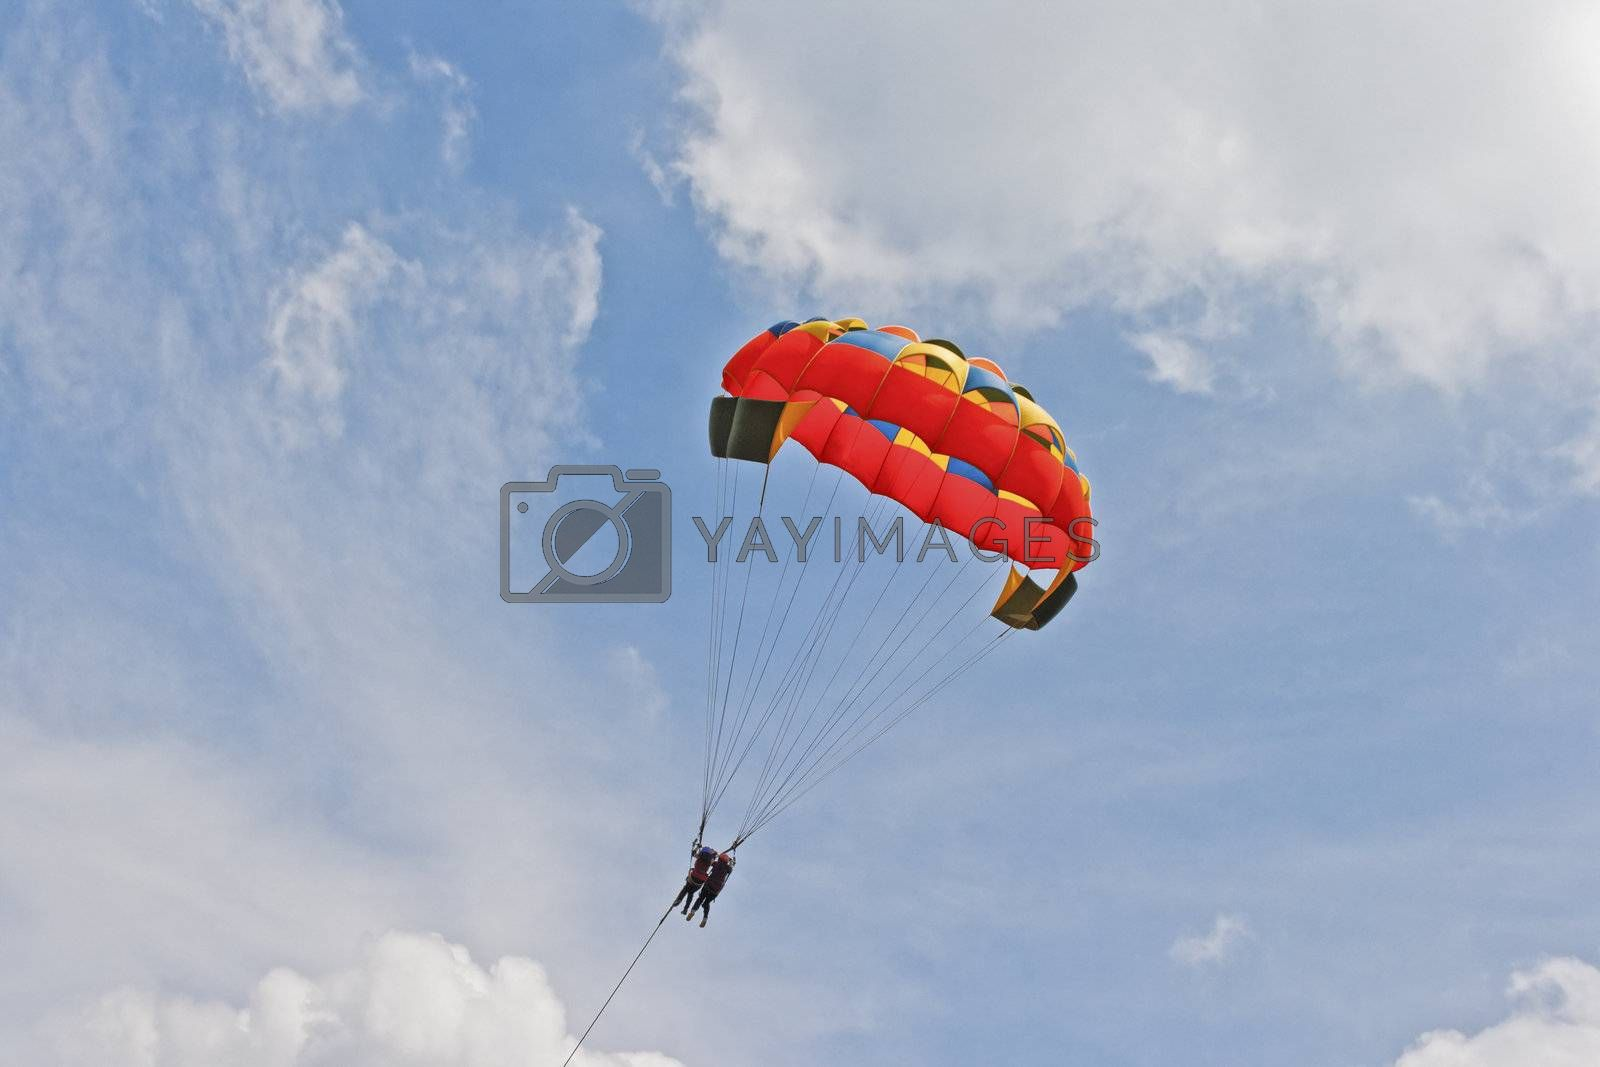 Lady paragliders drop from the clouds by arfabita